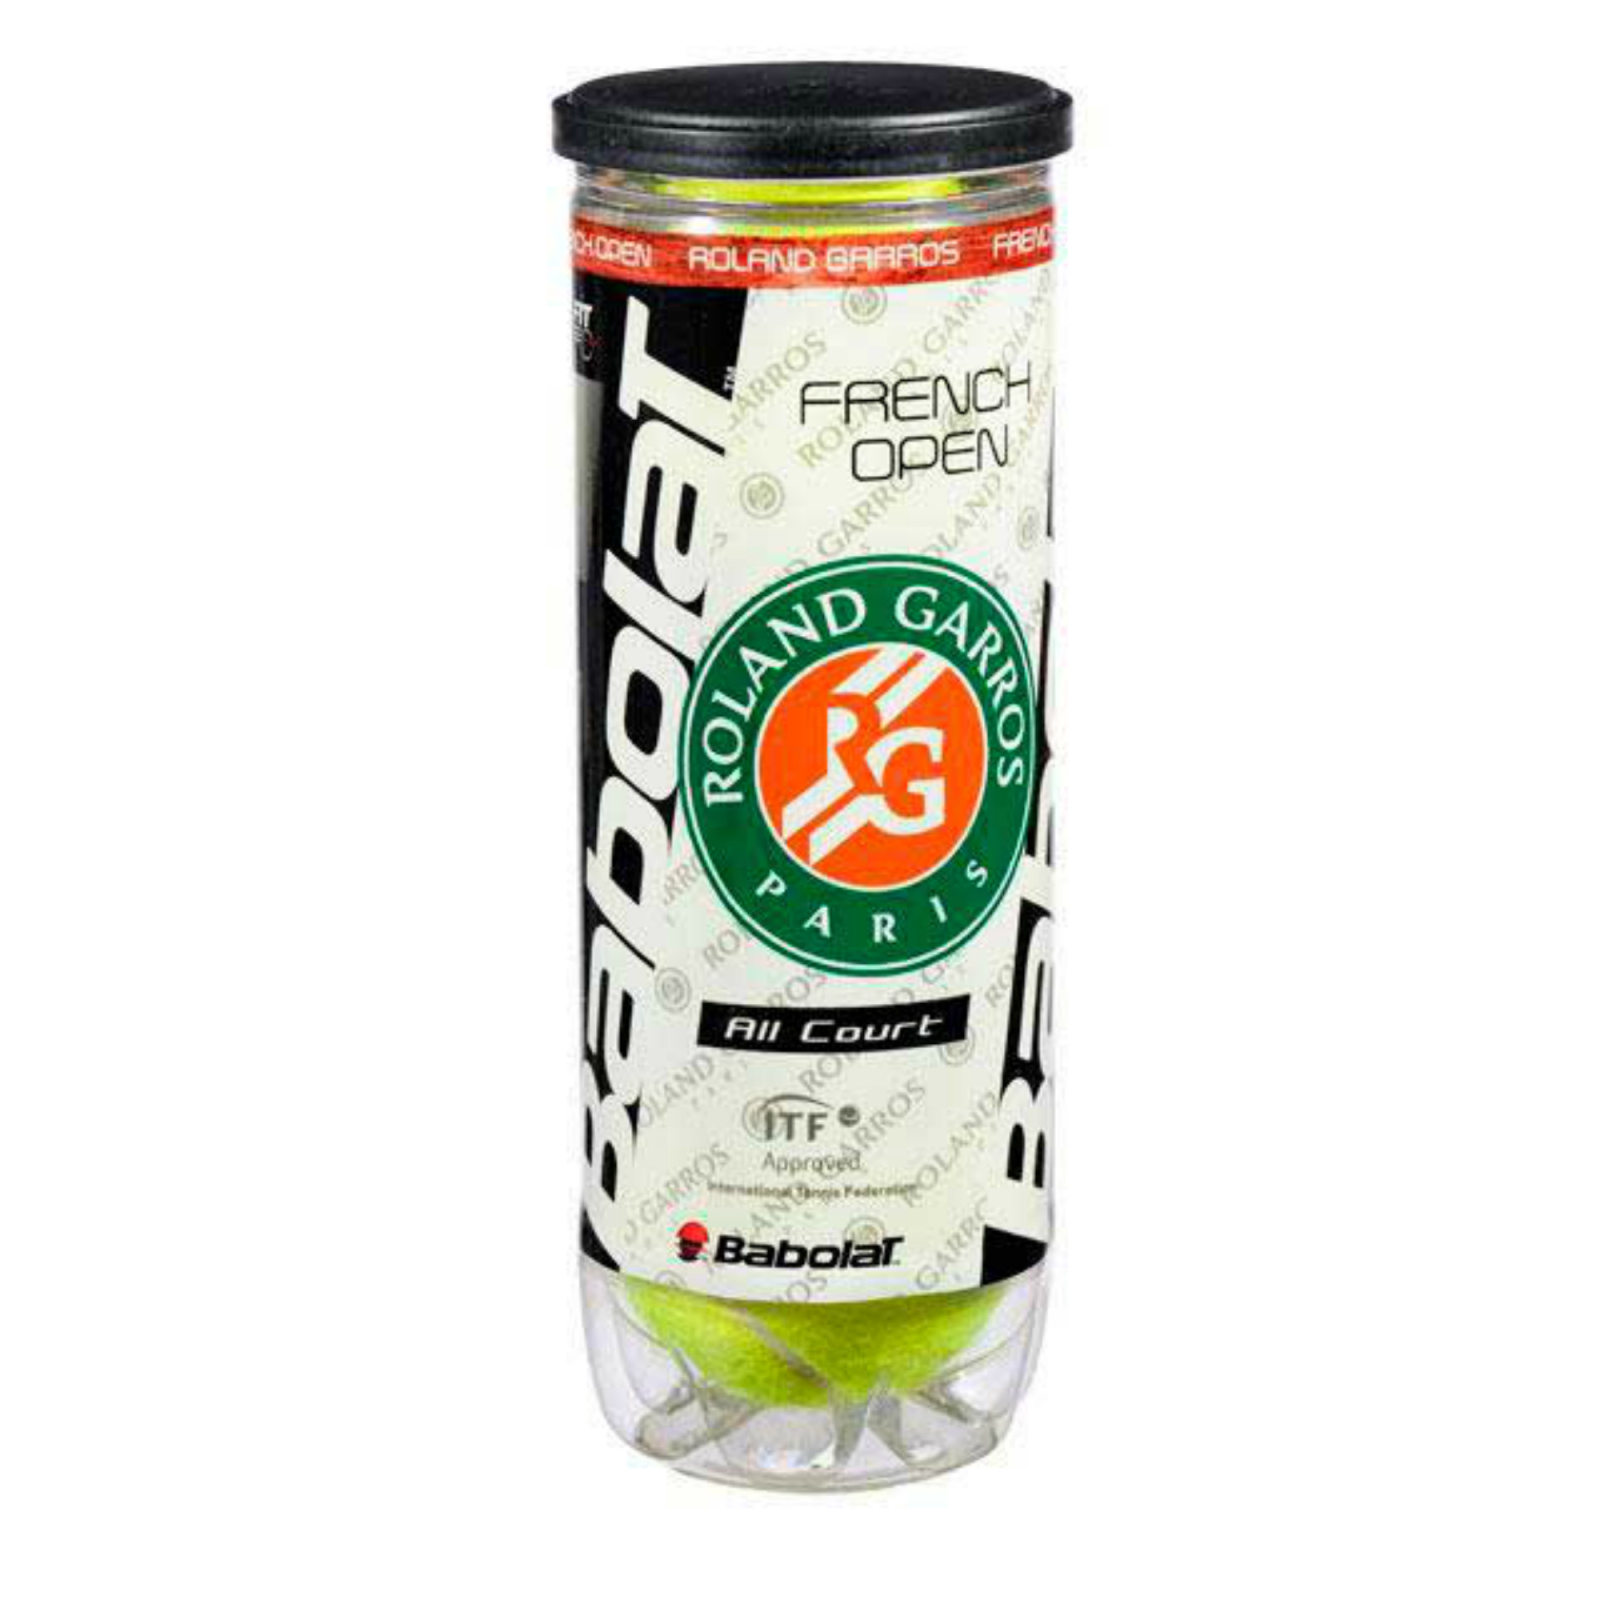 Babolat Roland Garrots Paris Tennis Balls All court French Open Pack of 3 by Babolat